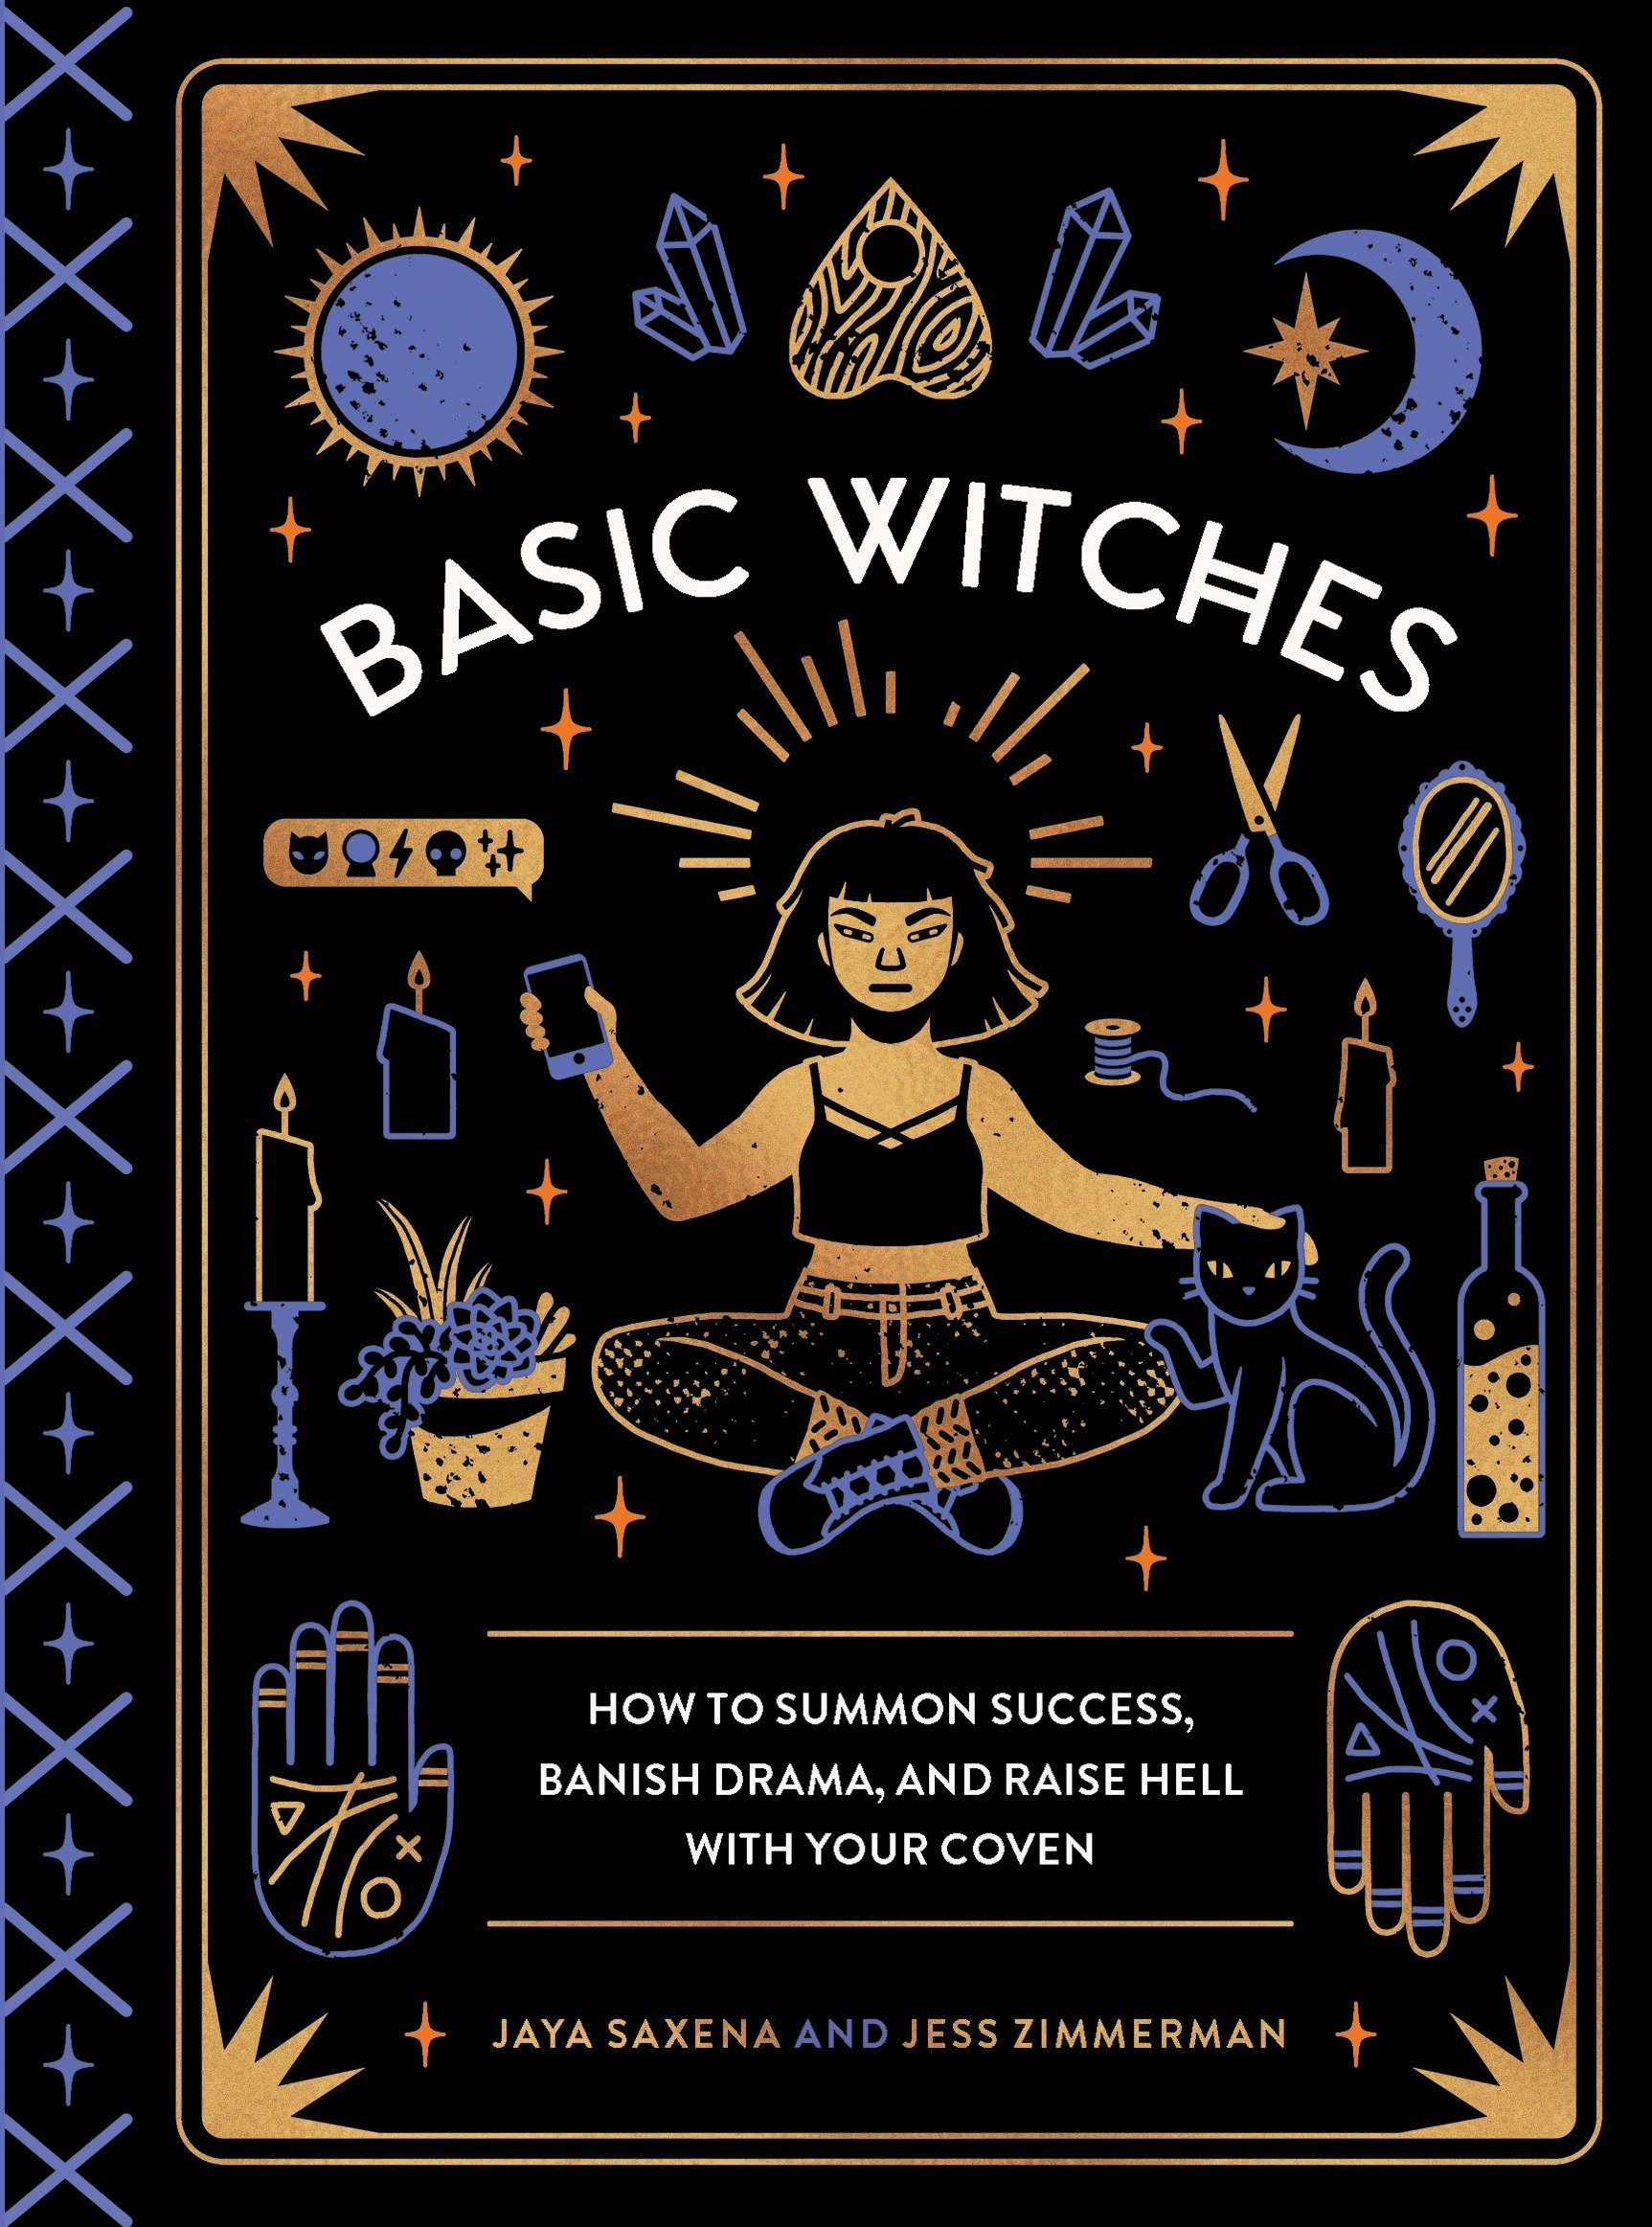 Basic Witches How to Summon Success, Banish Drama, and Raise Hell with Your Coven